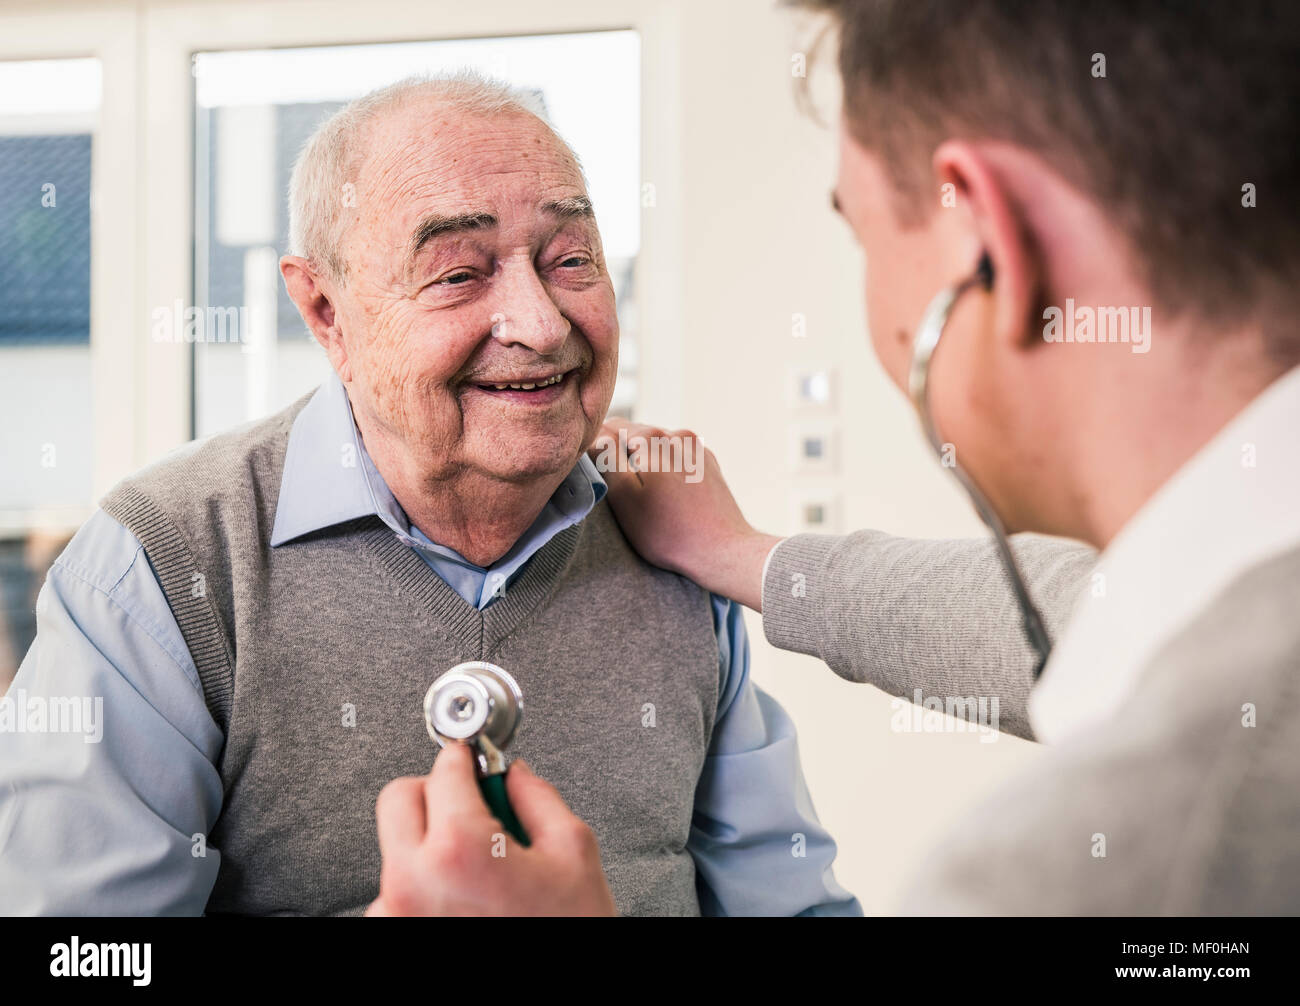 Senior man smiling at nurse with stethoscope at home - Stock Image